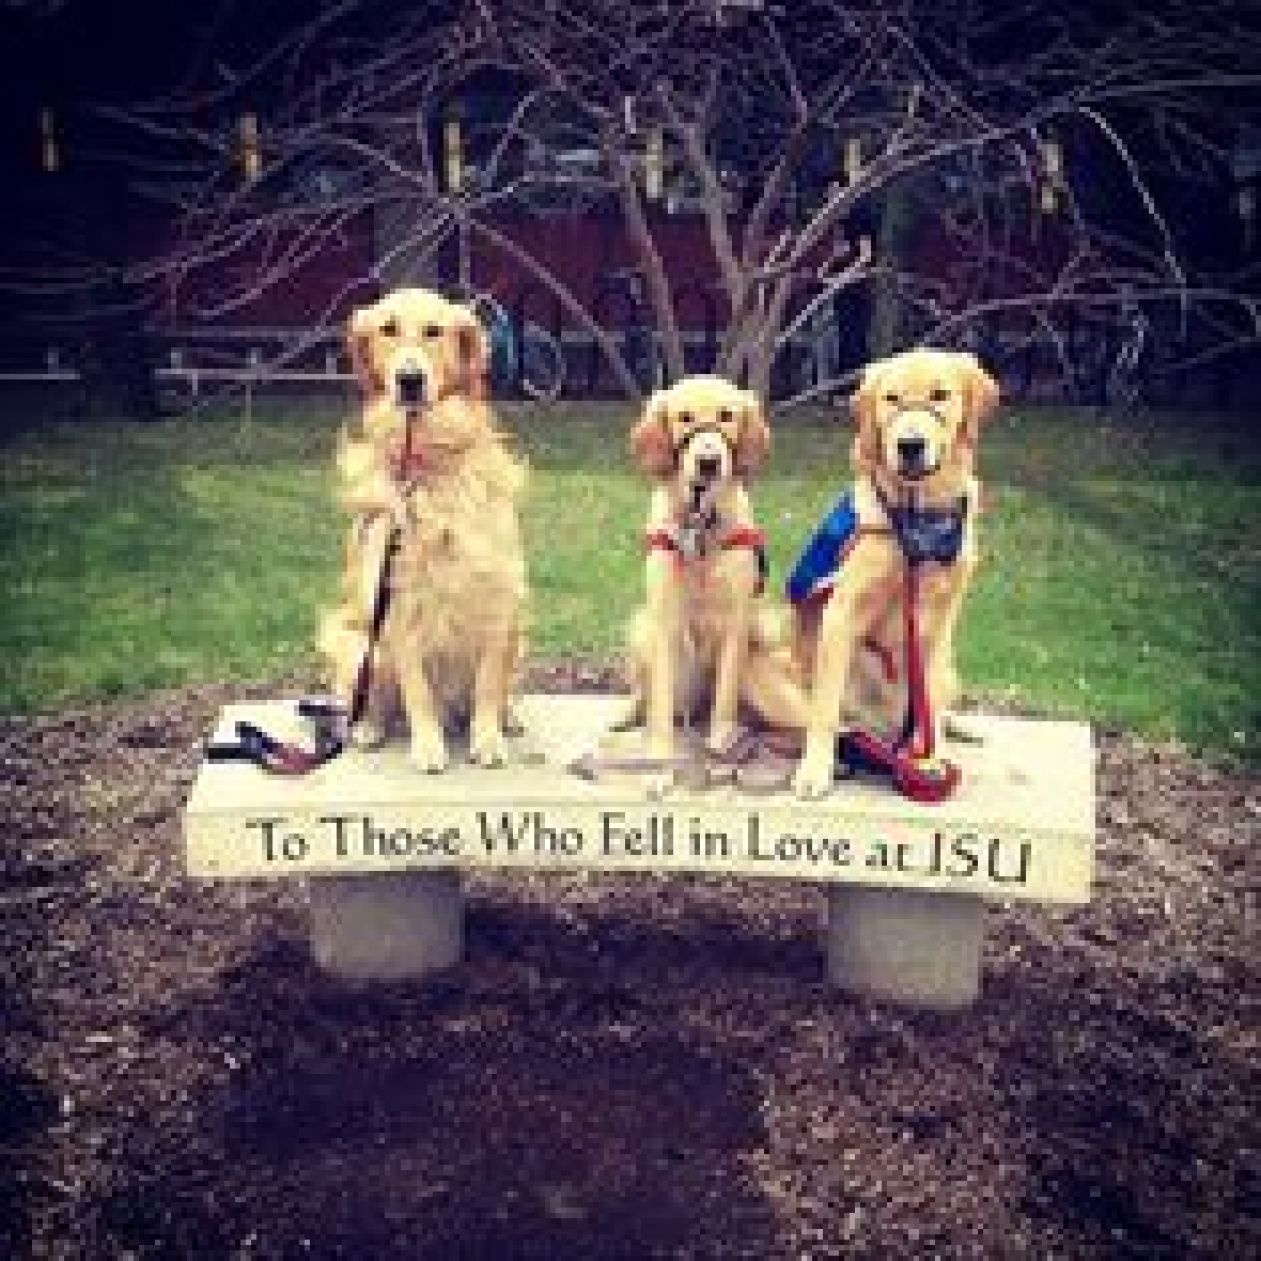 adorable pups on the Illinois State bench